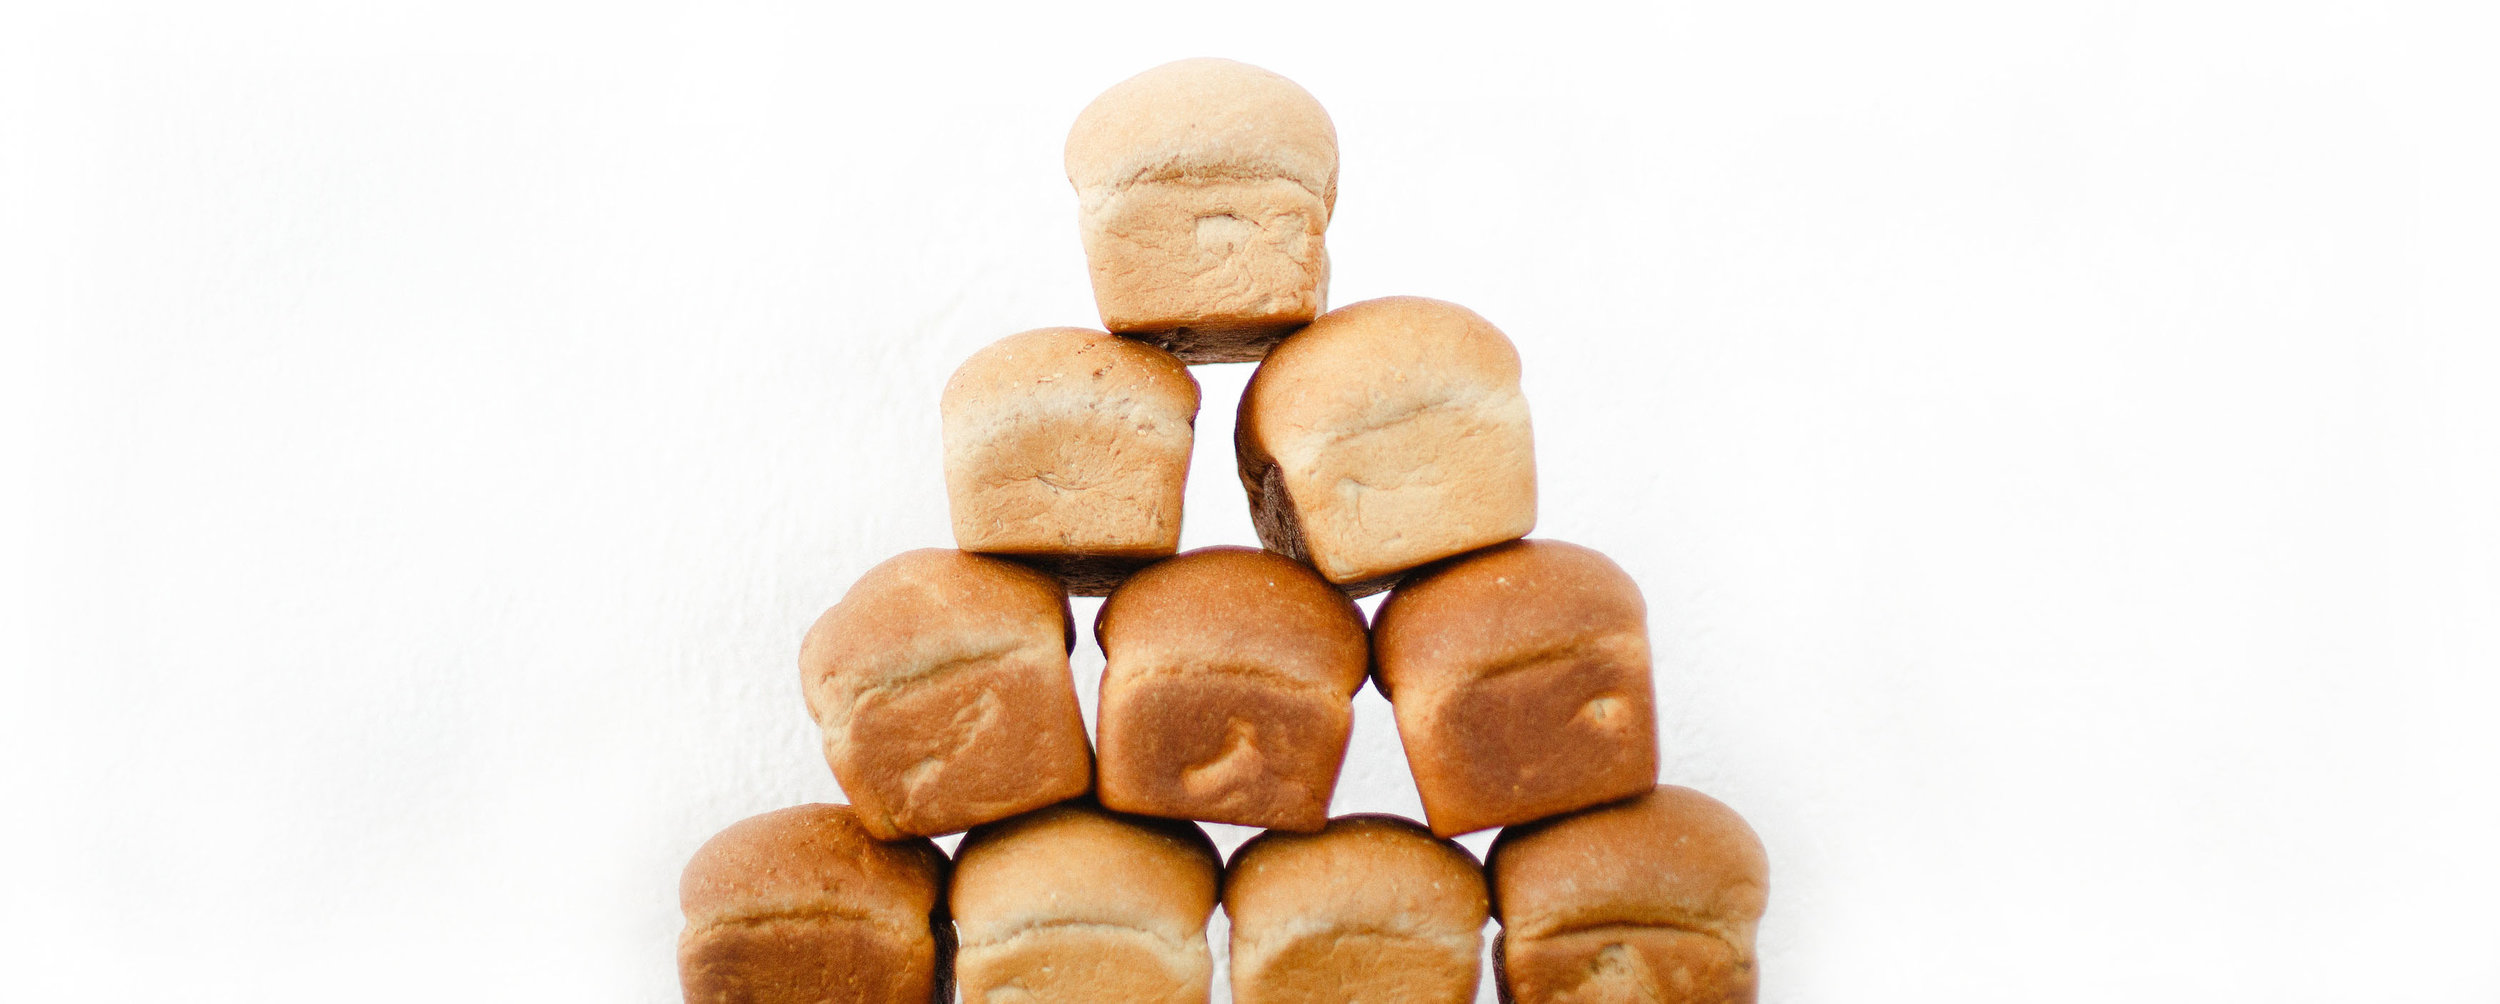 breads stacked.jpg